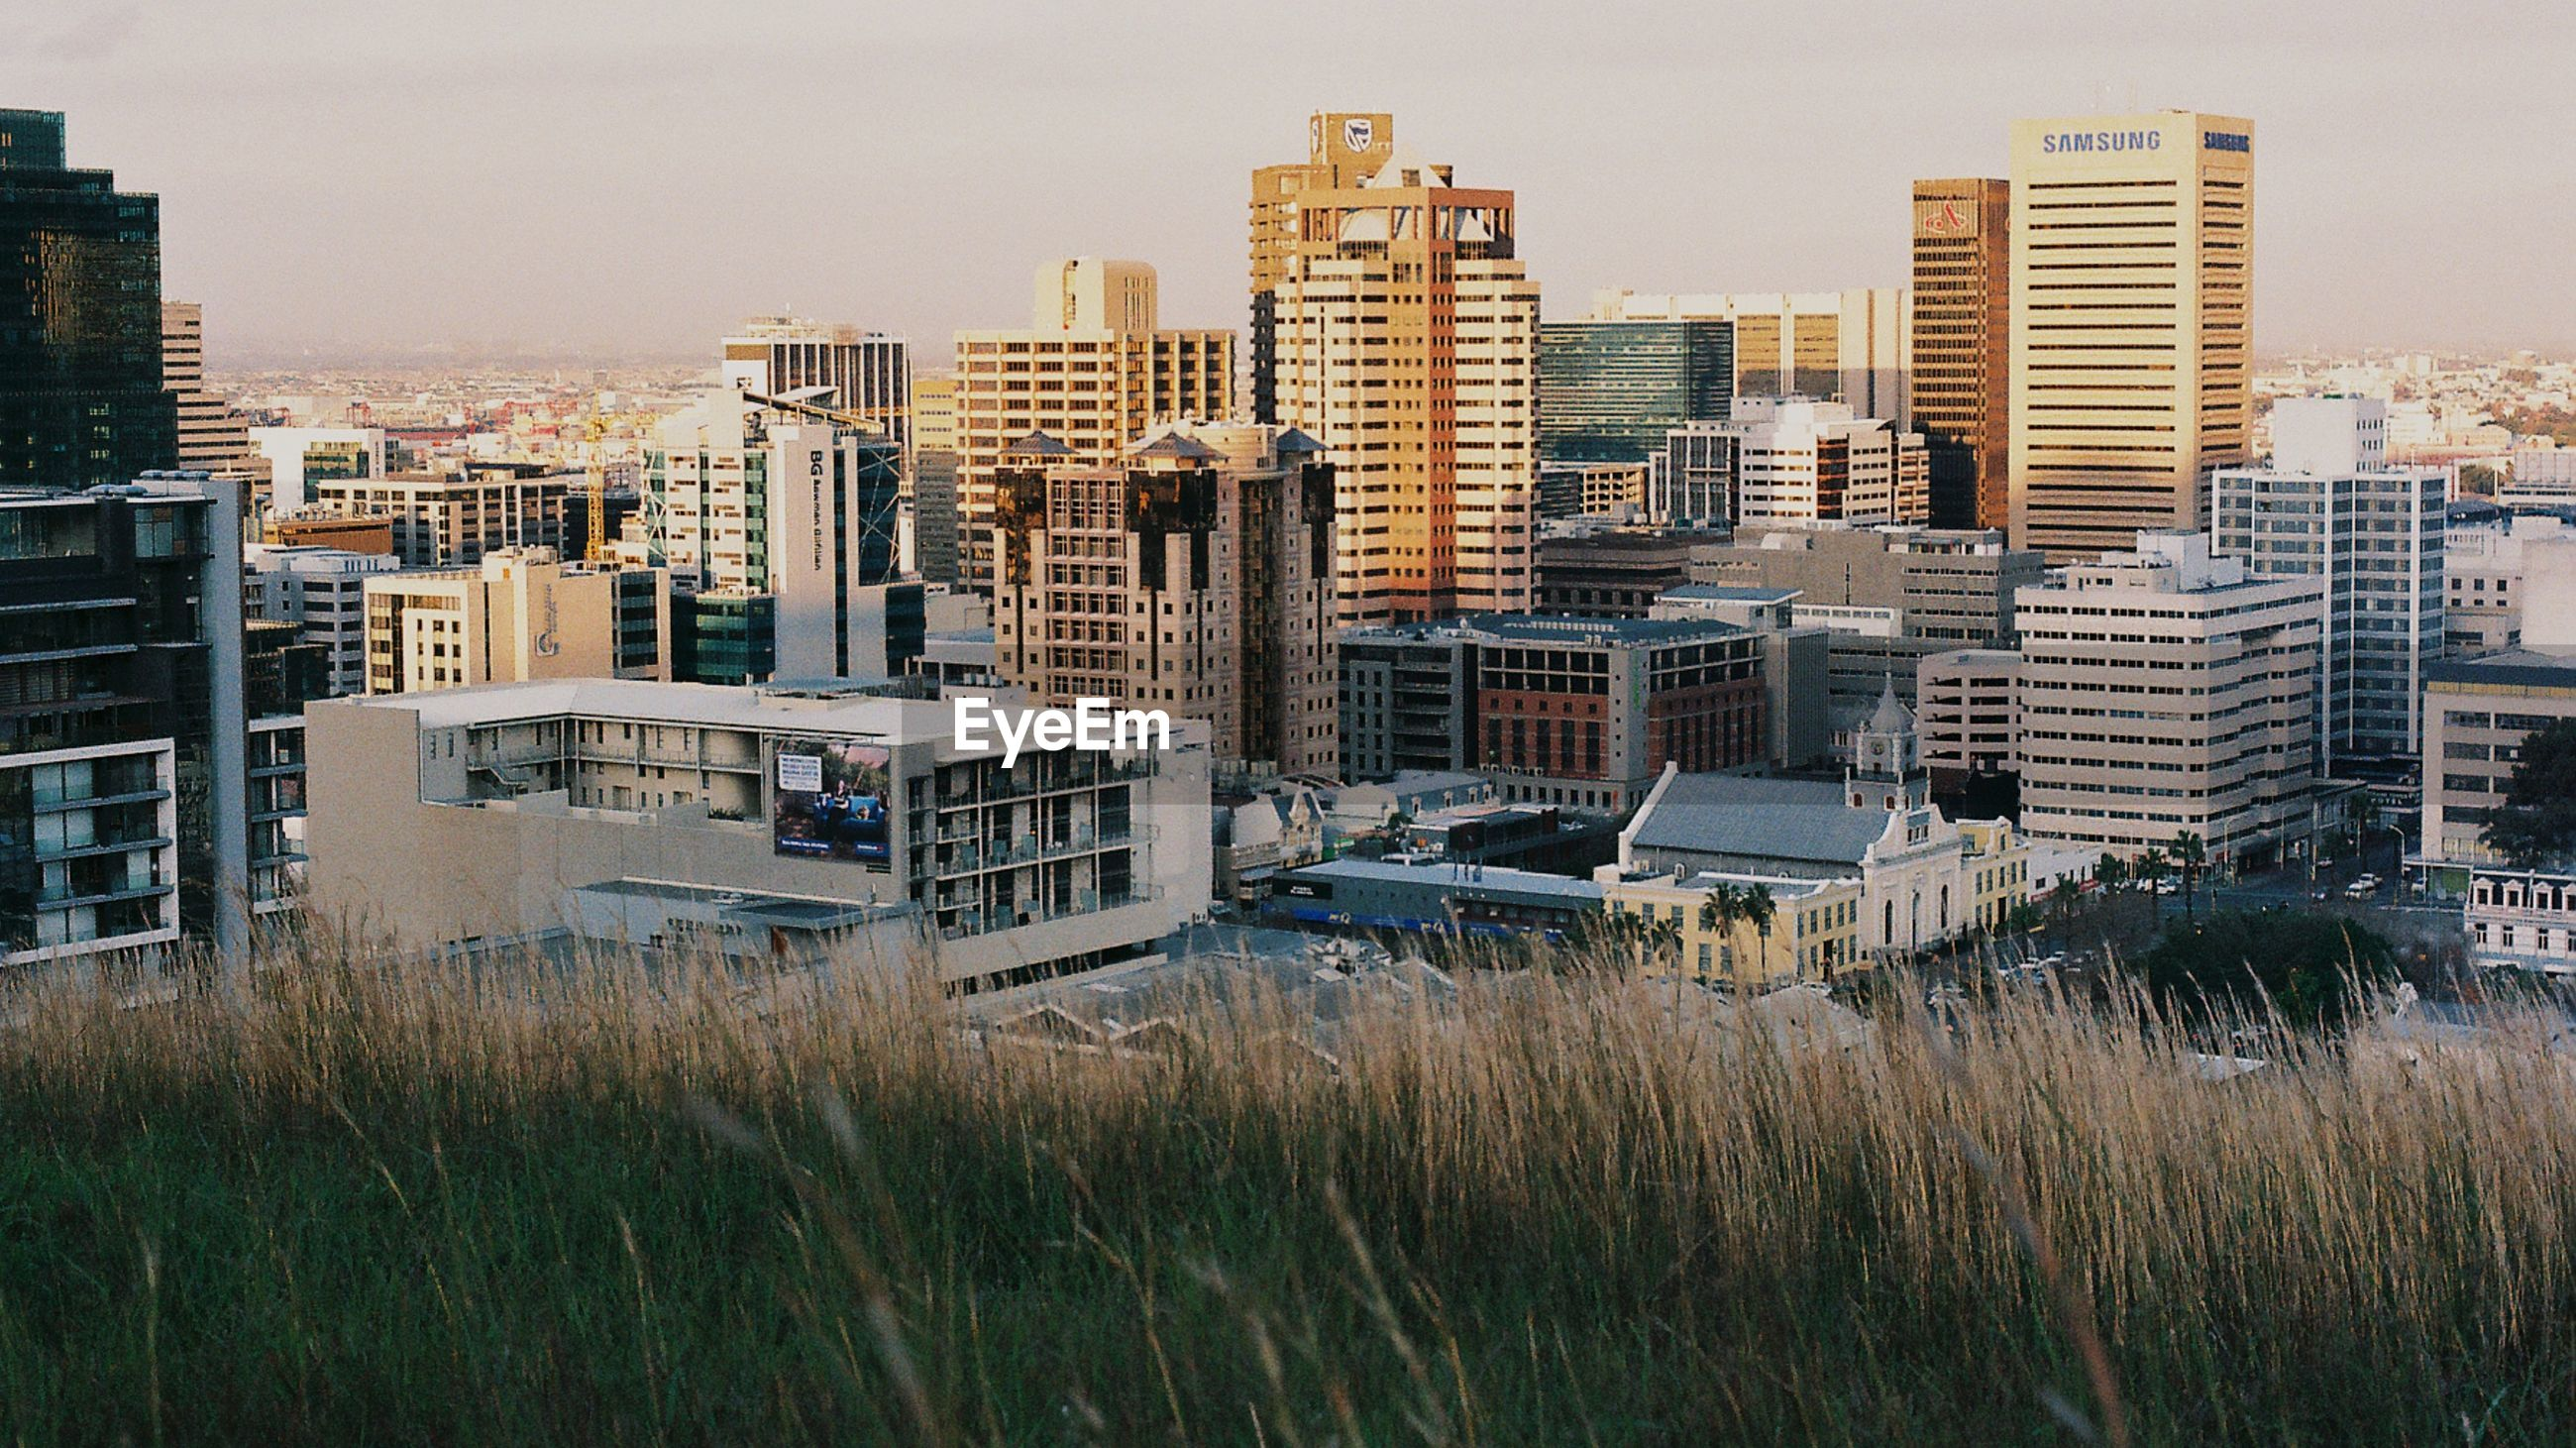 Buildings in front of grassy field in city